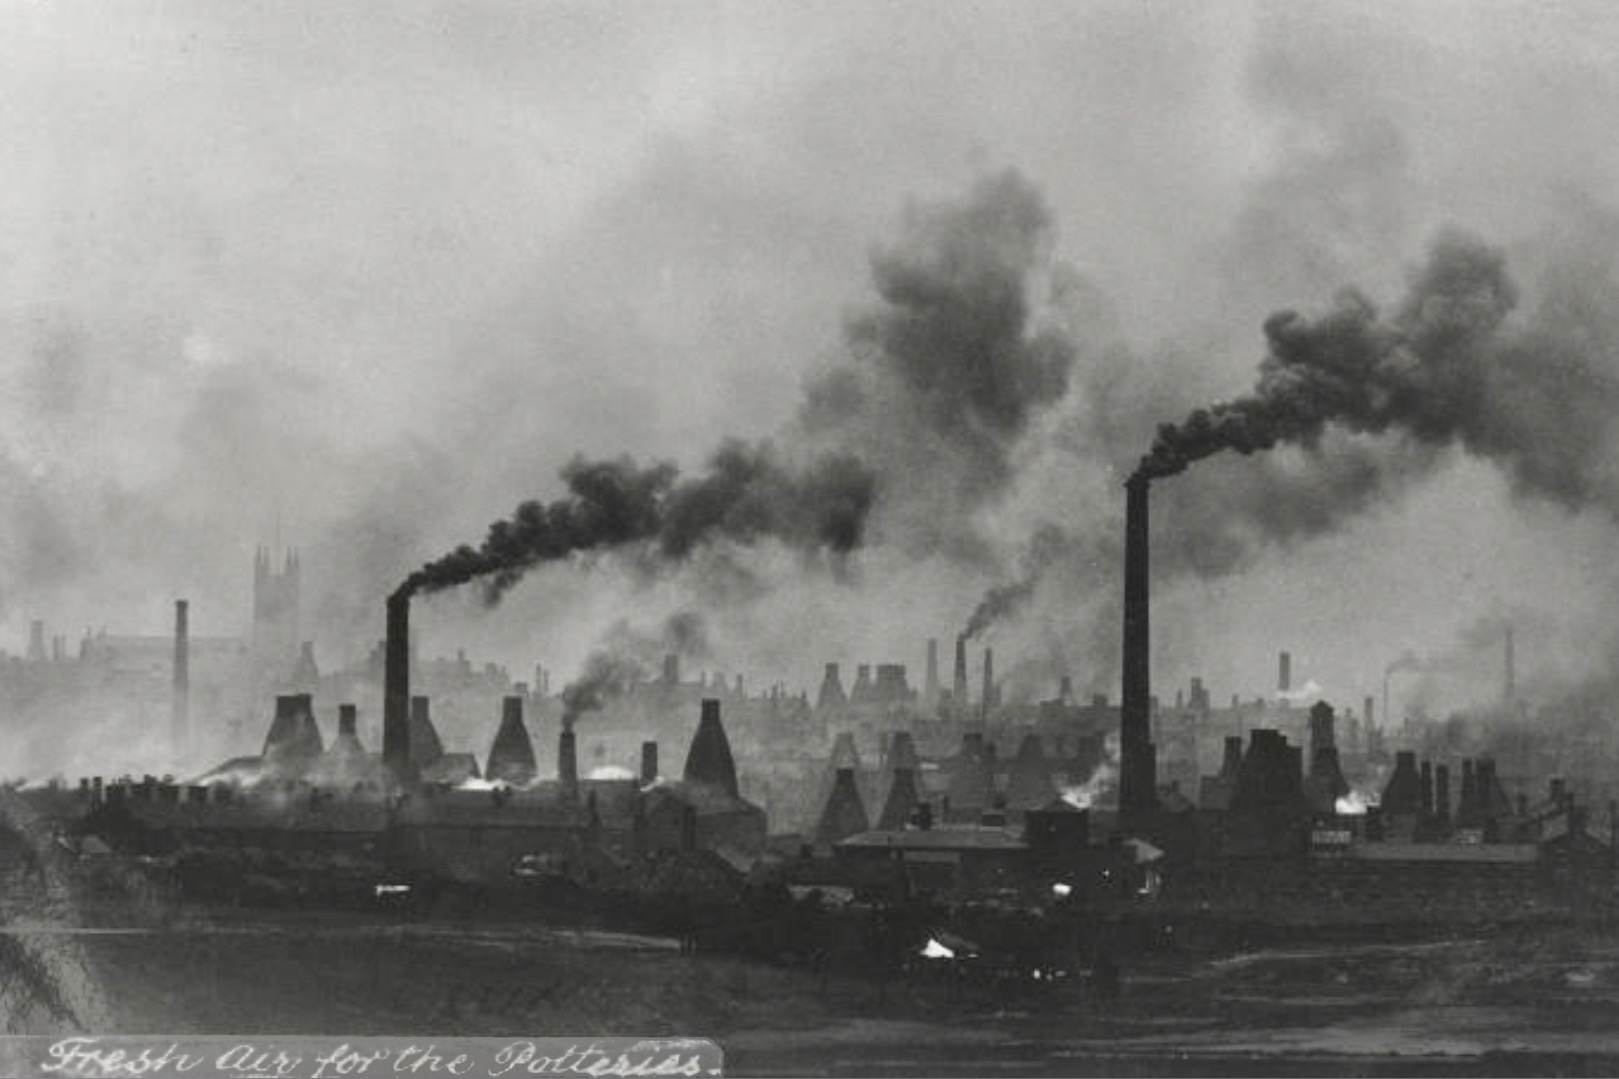 The Potteries (Stoke-on-Trent, England)